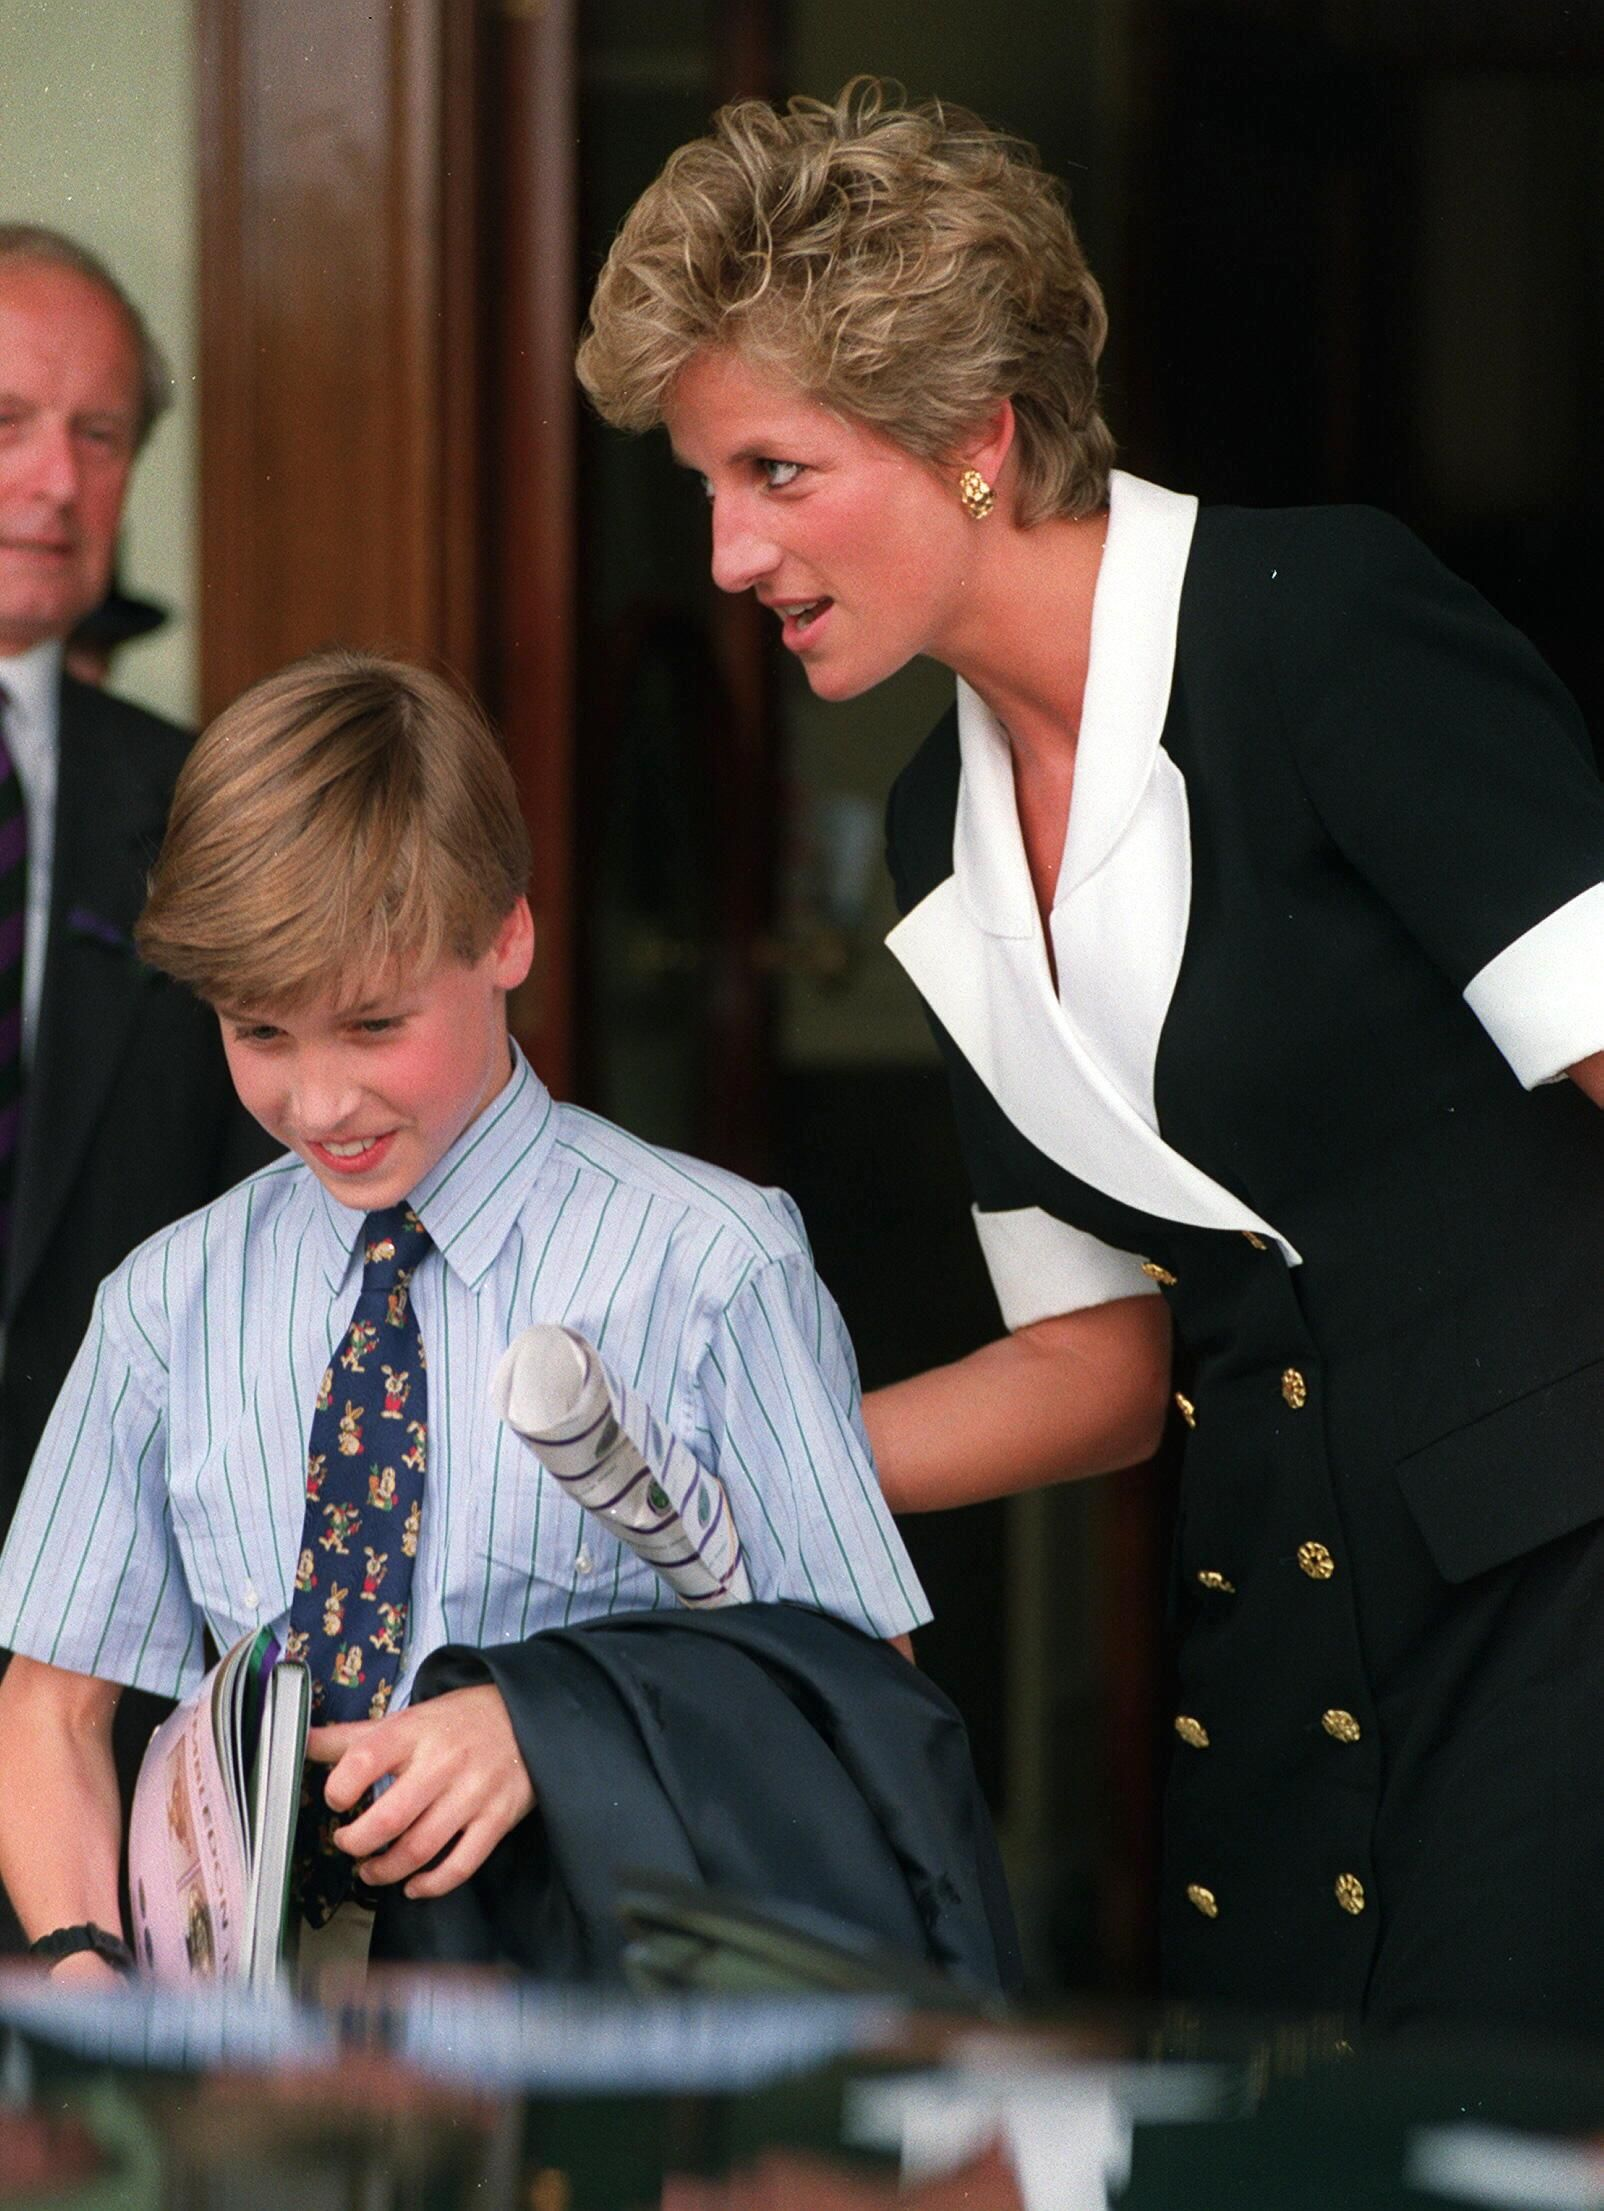 Diana Princess Of Wales: The Adorable Discovery Found On A Dress 30 Years After It Was Worn Diana Princess Of Wales: The Adorable Discovery Found On A Dress 30 Years After It Was Worn new foto